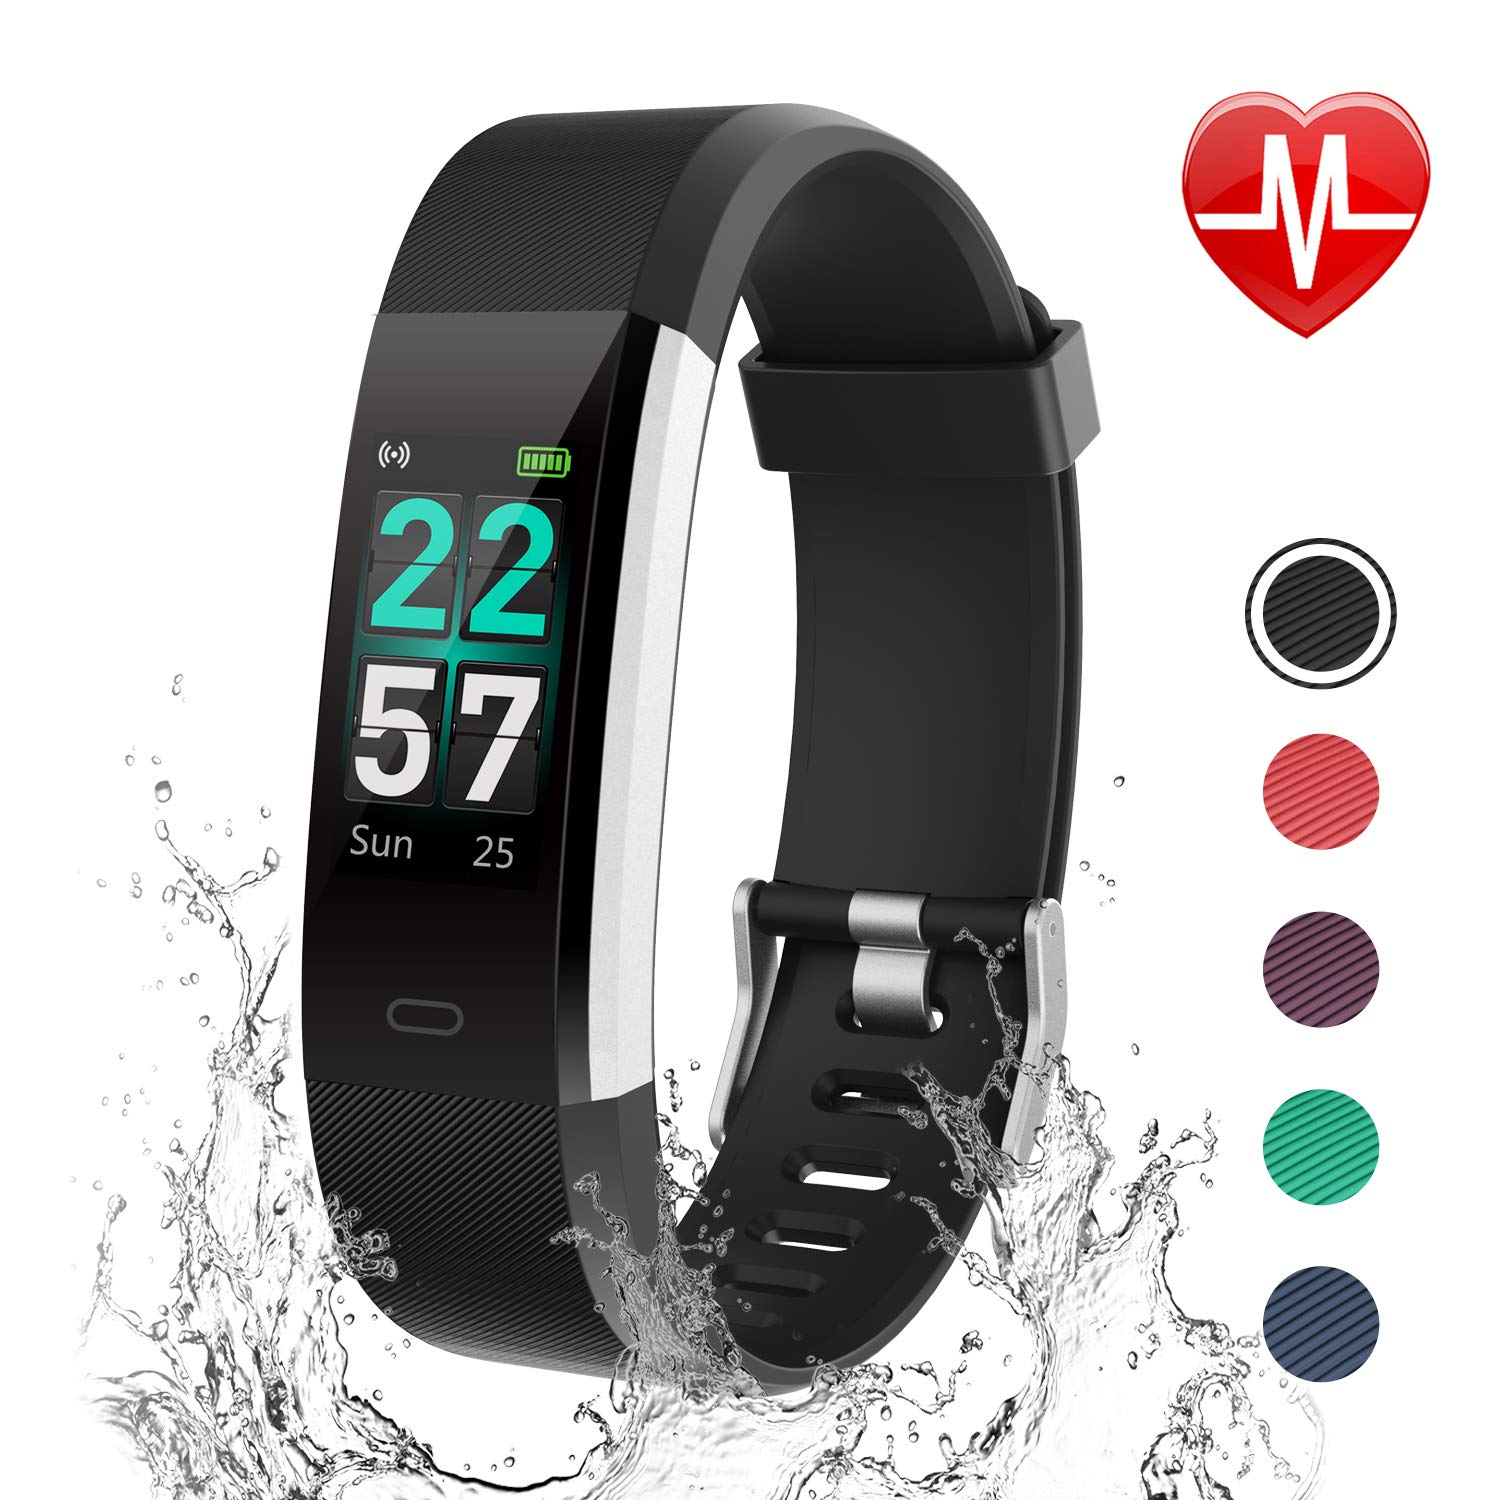 LETSCOM Fitness Tracker HR, Activity Tracker Watch with Heart Rate Monitor,  Waterproof Smart Bracelet with Step Counter, Calorie Counter, Pedometer